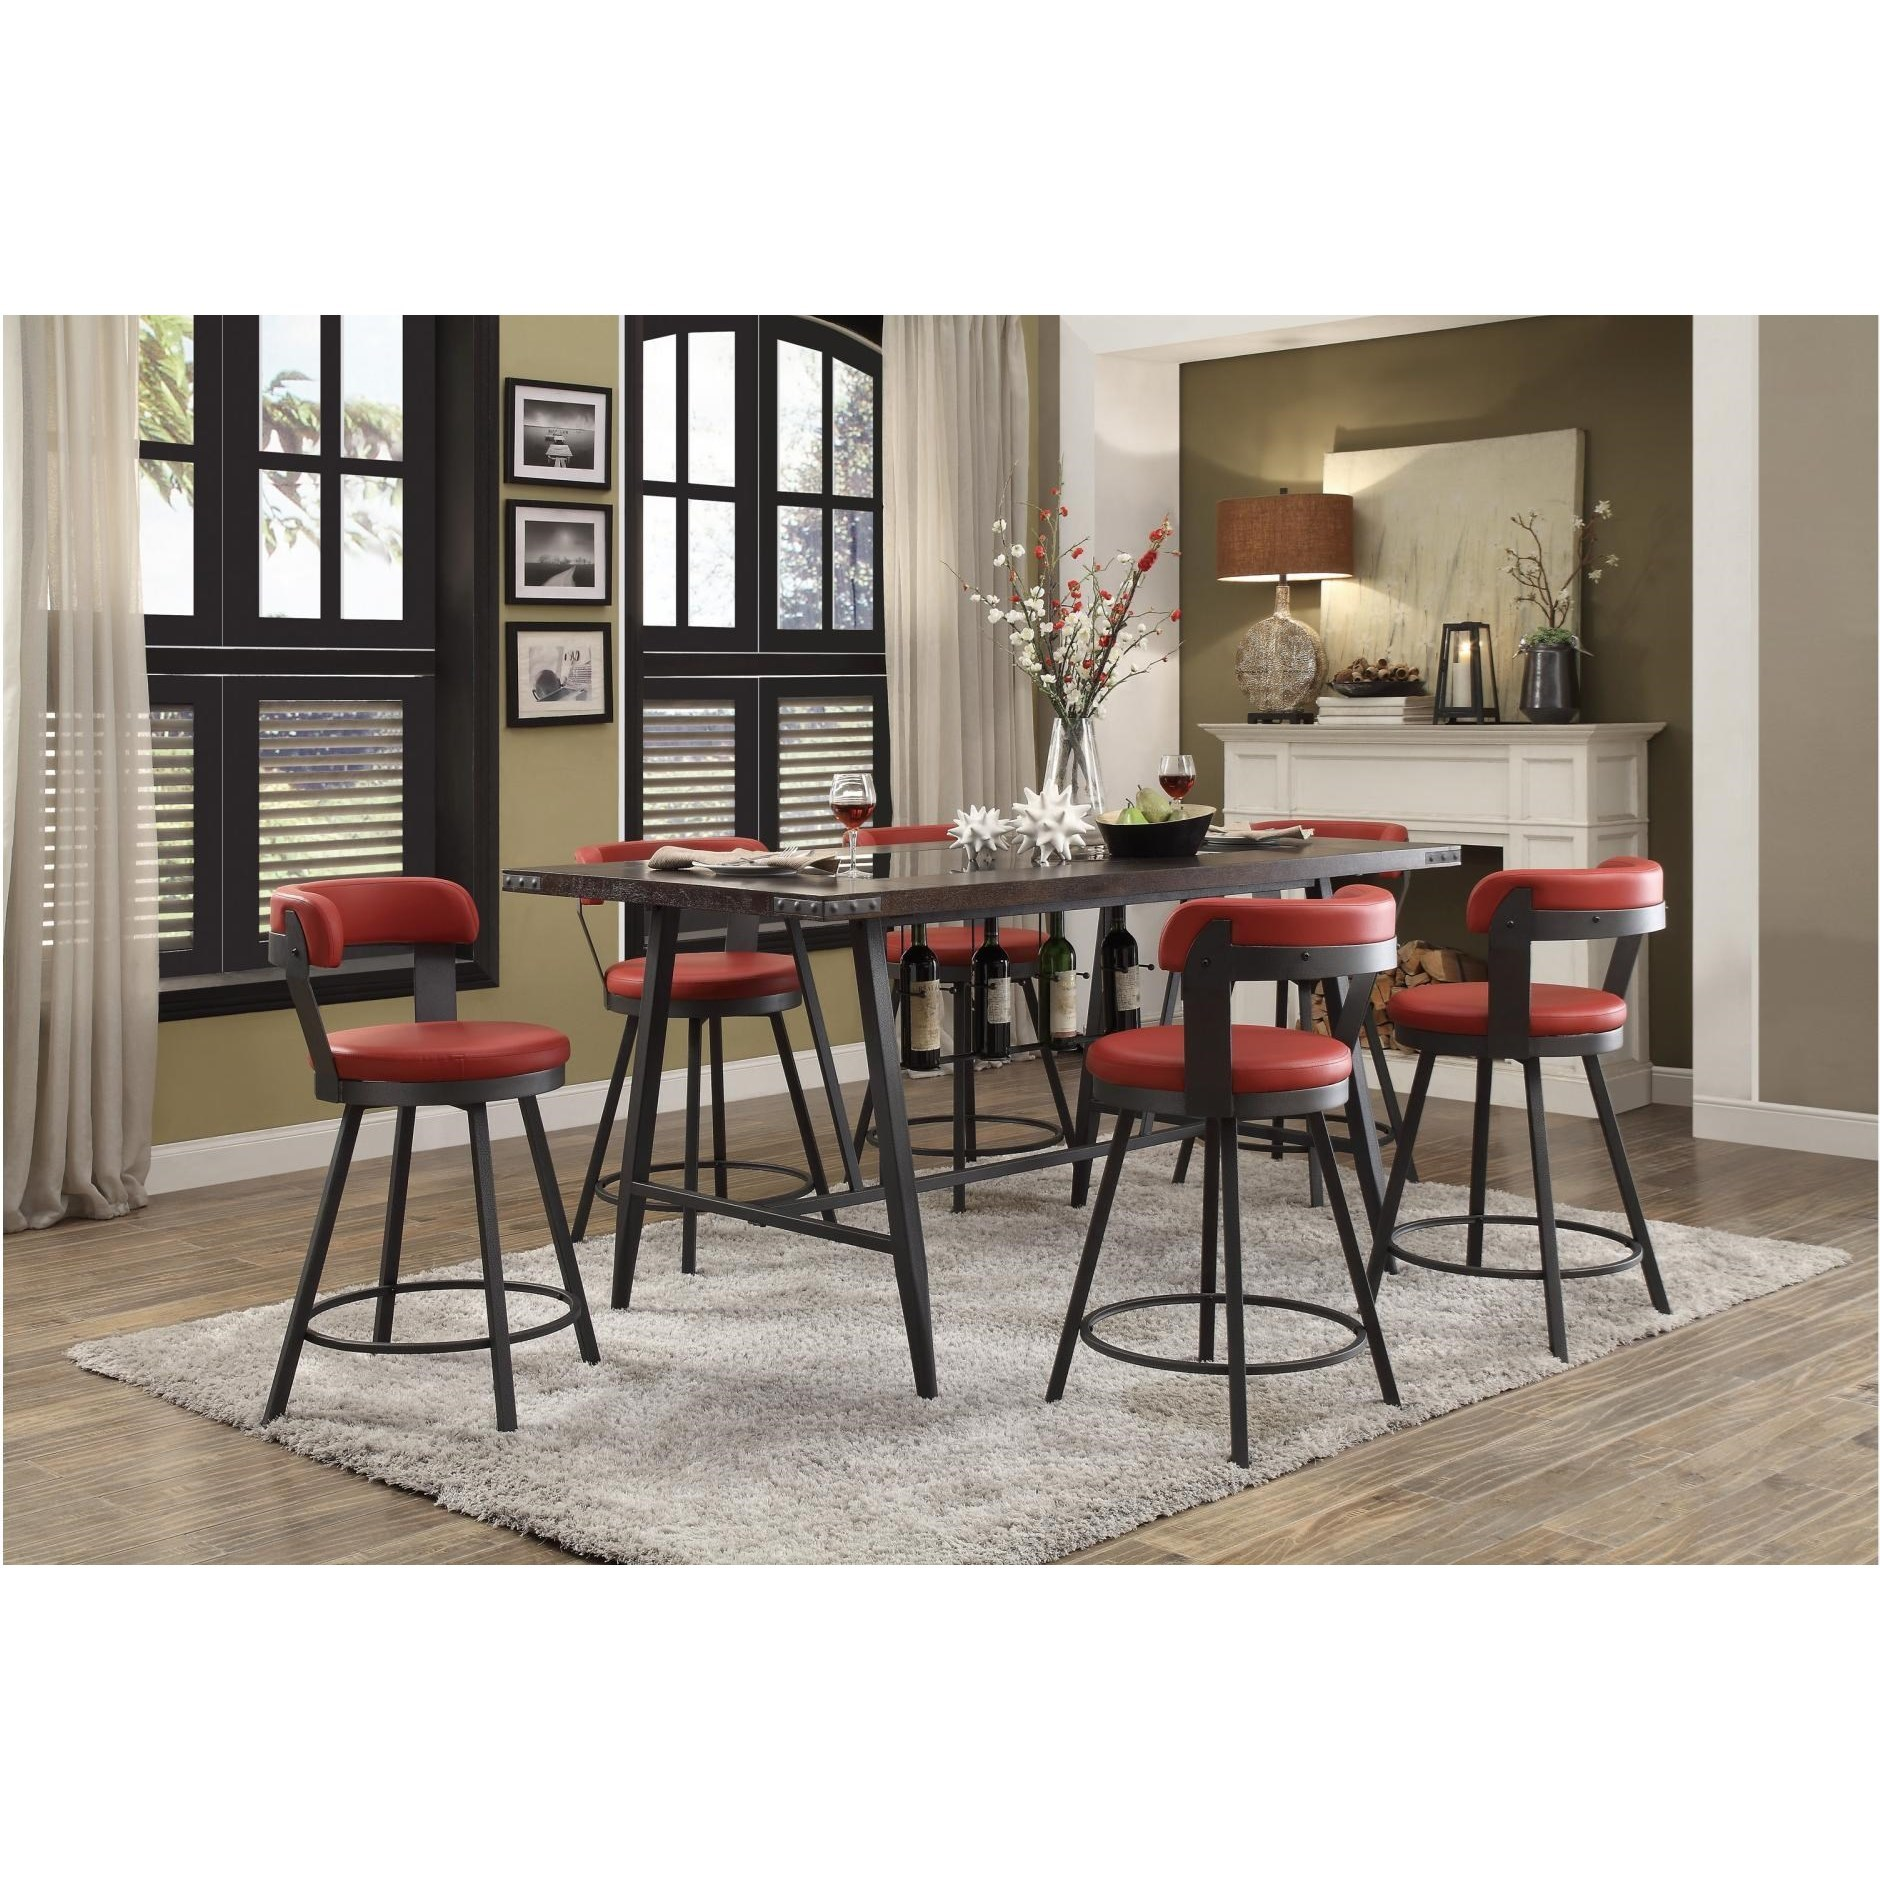 Appert 7pc Dining Room Group by Homelegance at Value City Furniture